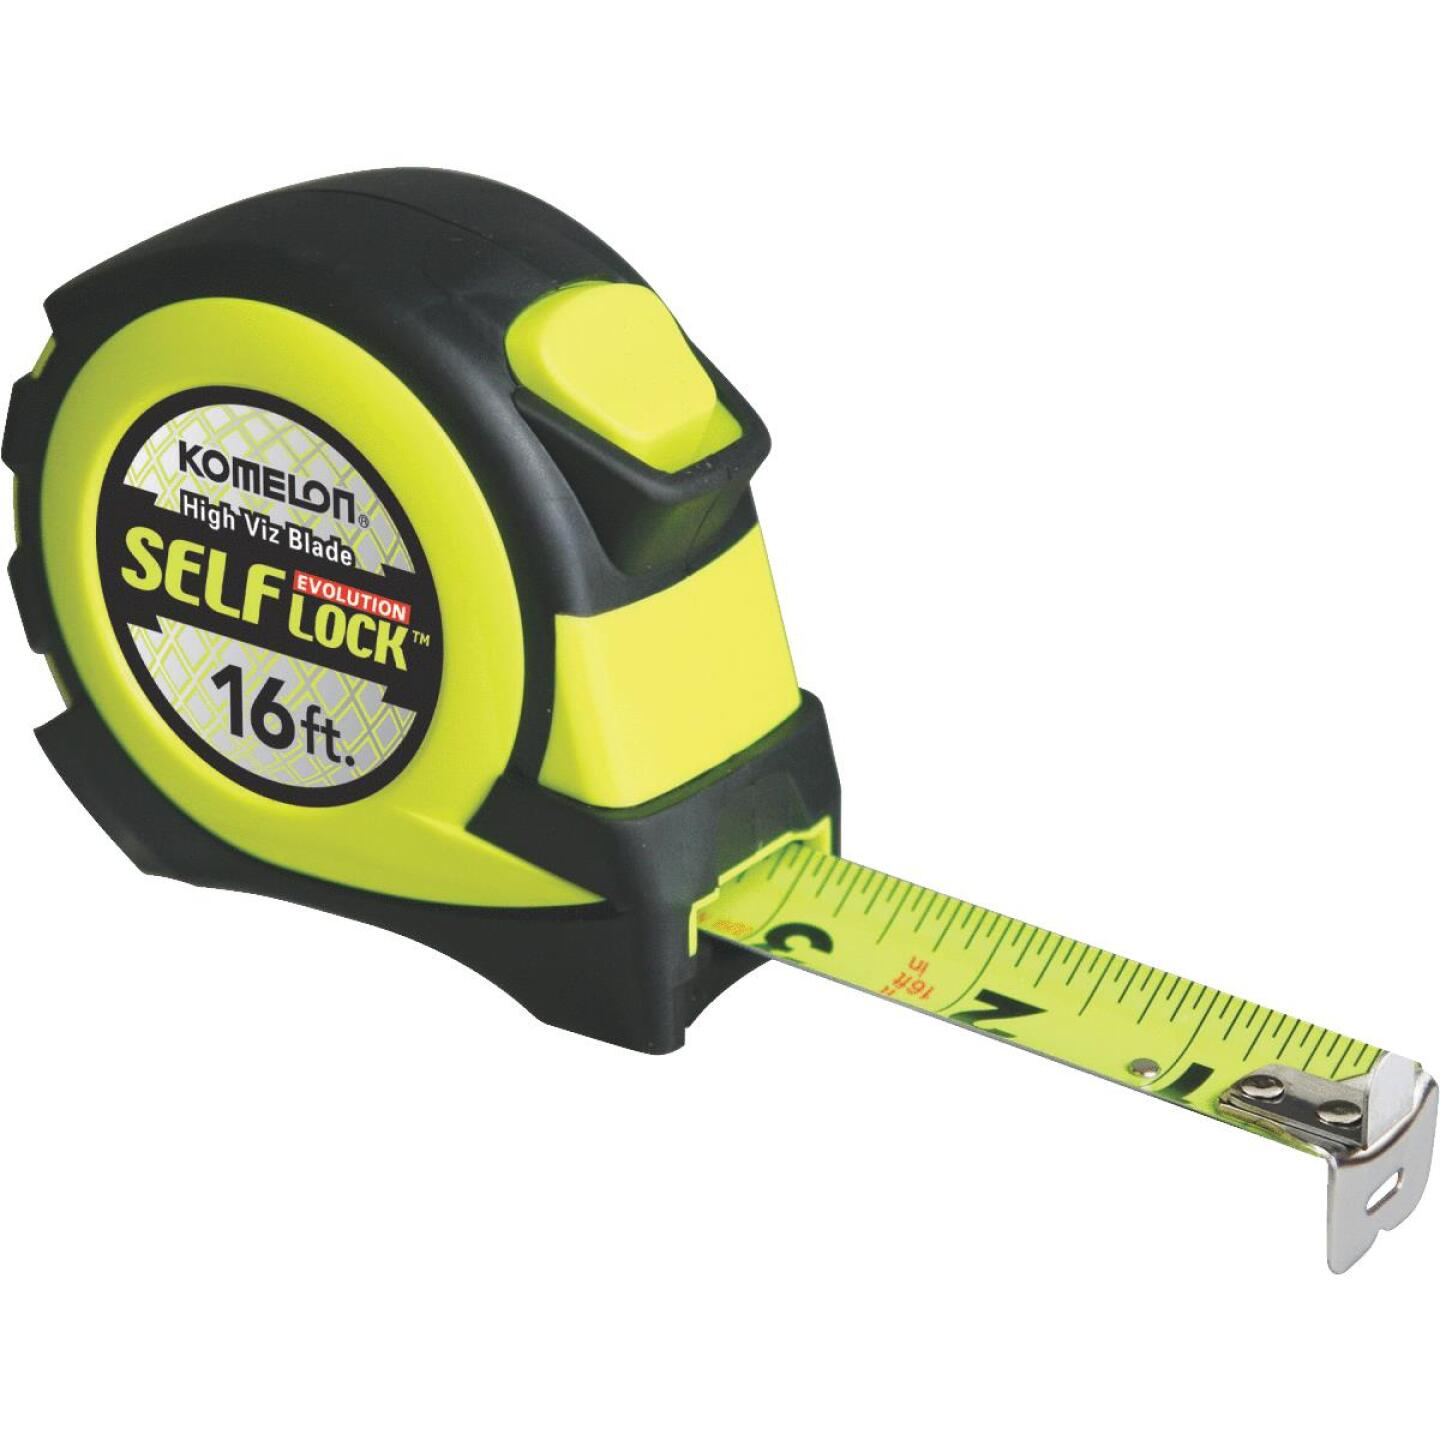 Komelon Evolution 16 Ft. Self-Lock Tape Measure Image 1